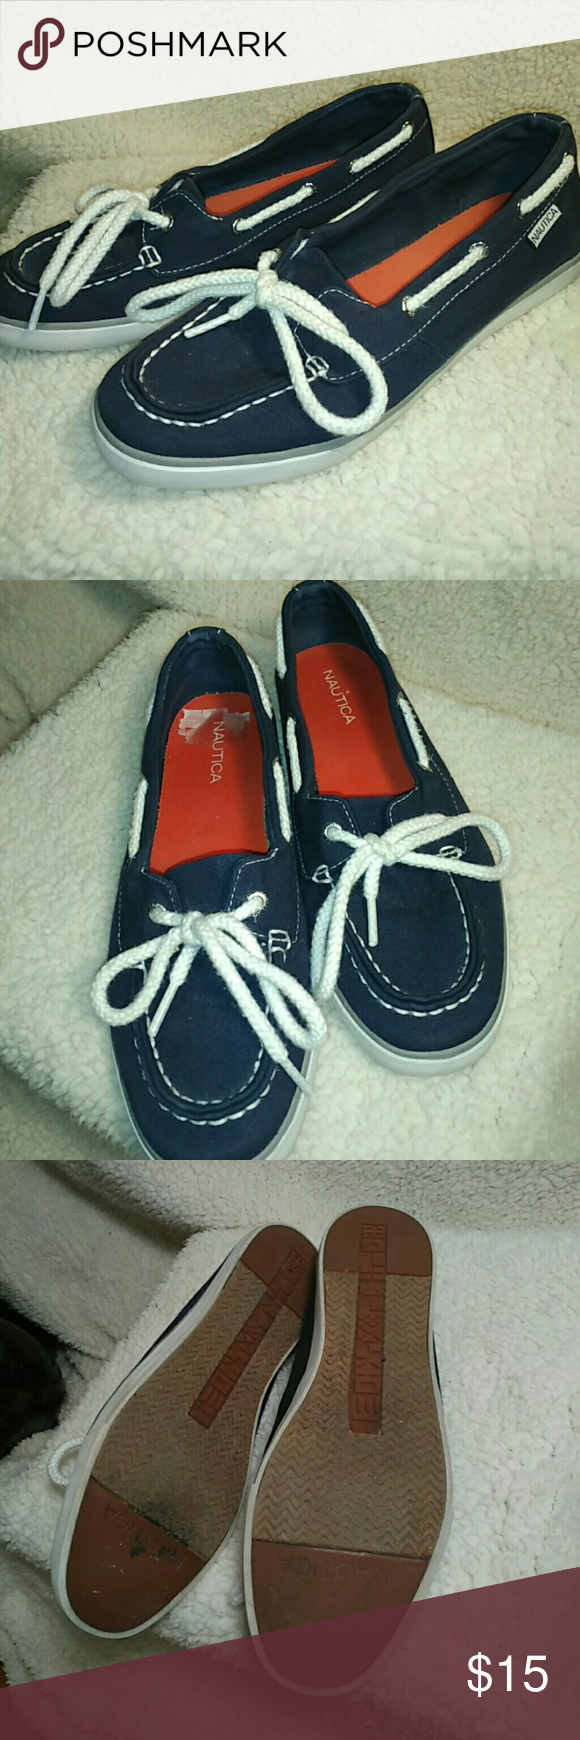 Nautica Boat Shoes Extremely comfortable shoes with excellent padding. They easily slip on and are made of very durable canvas. Looks new when worn. Nautica Shoes Flats & Loafers